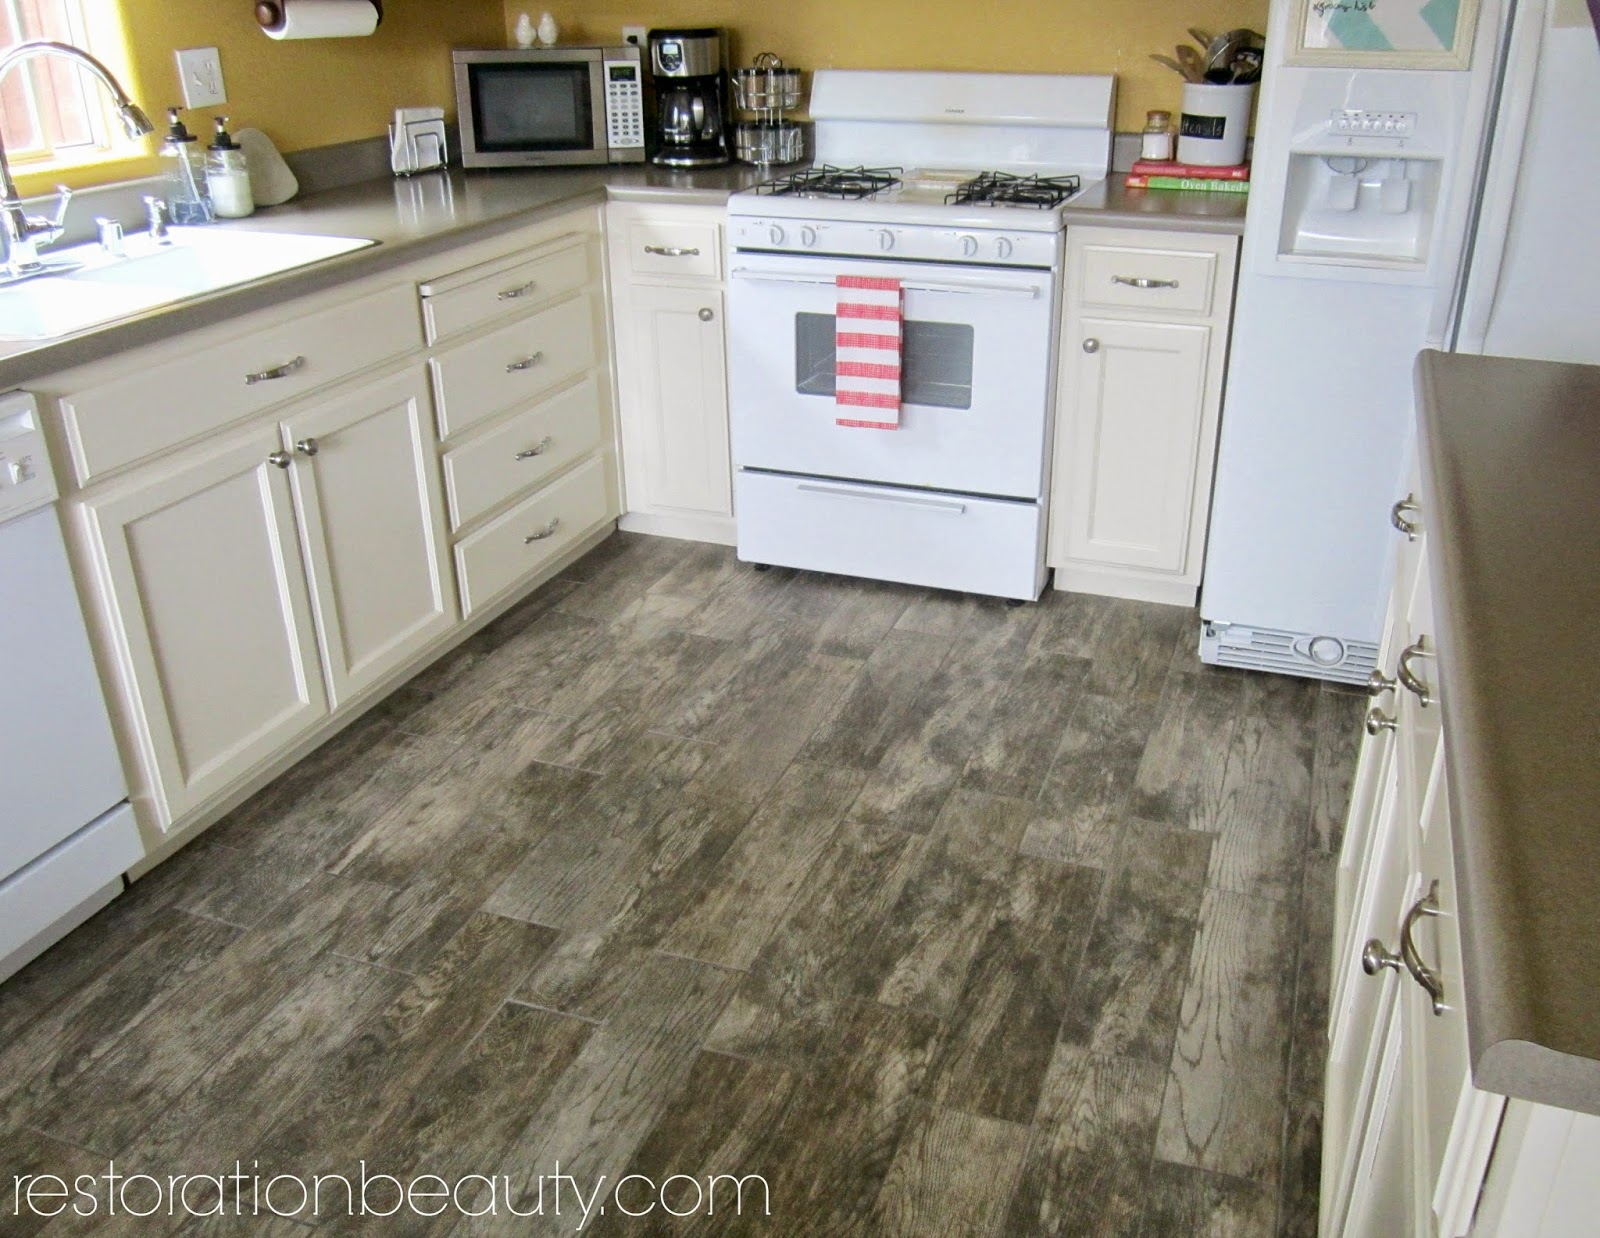 restoration beauty faux wood tile flooring in the kitchen. Black Bedroom Furniture Sets. Home Design Ideas